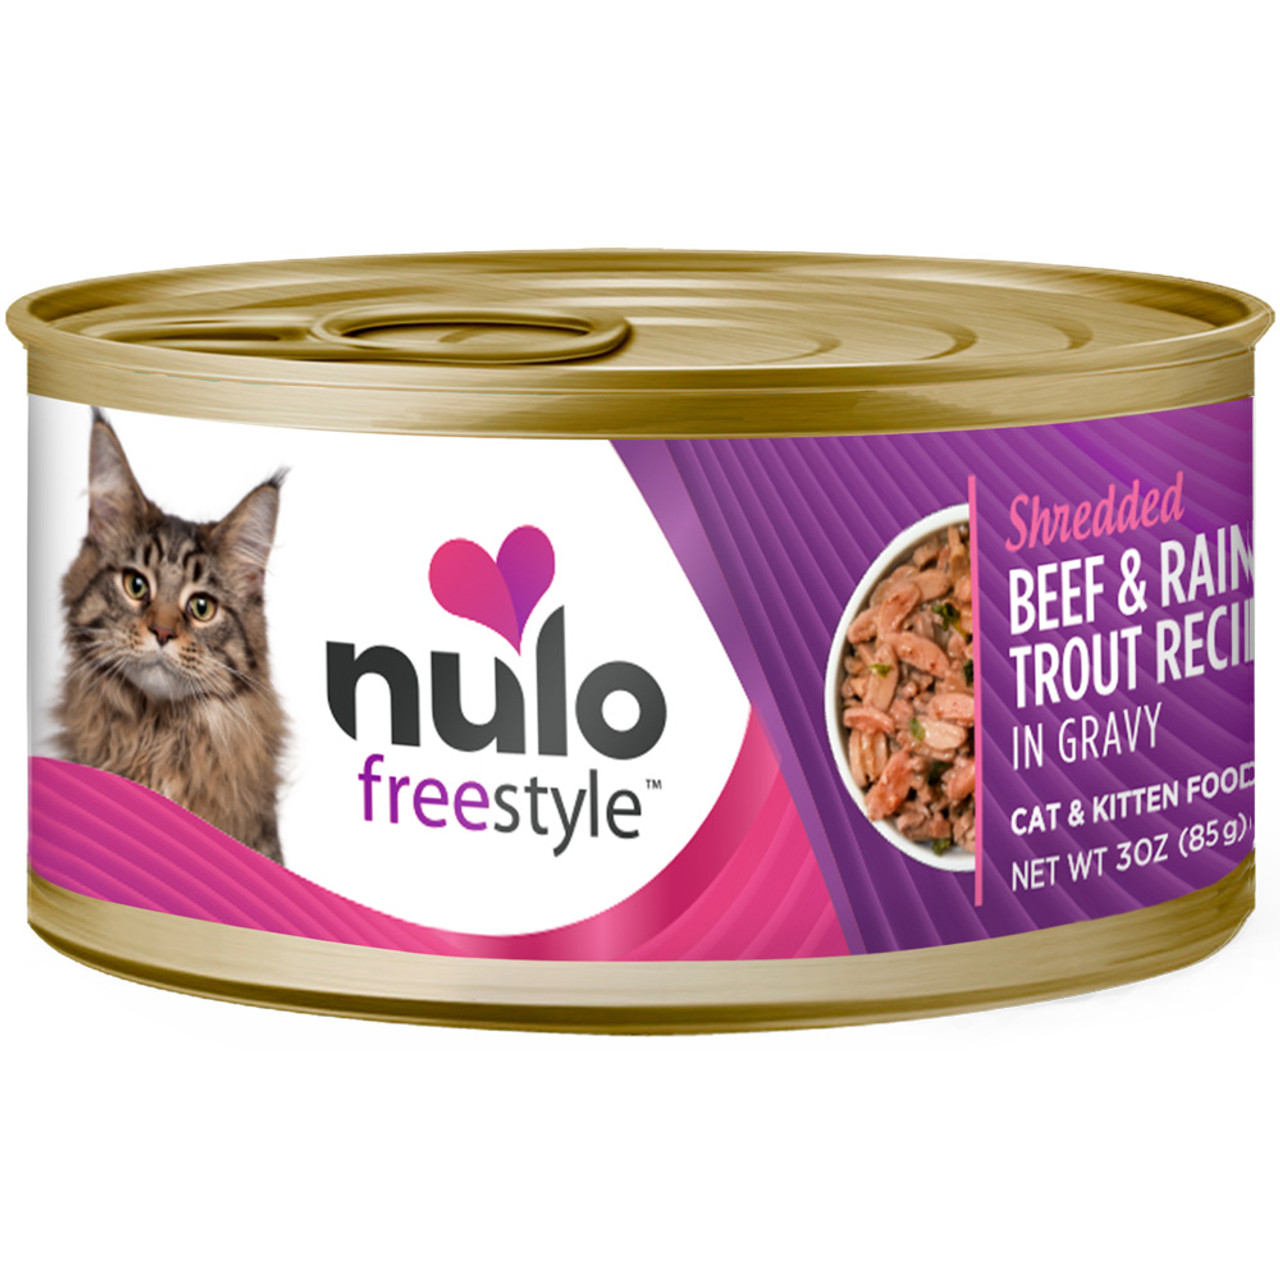 Nulo Freestyle Cat & Kitten Shredded Beef & Rainbow Trout Recipe In Gravy Canned Cat Food